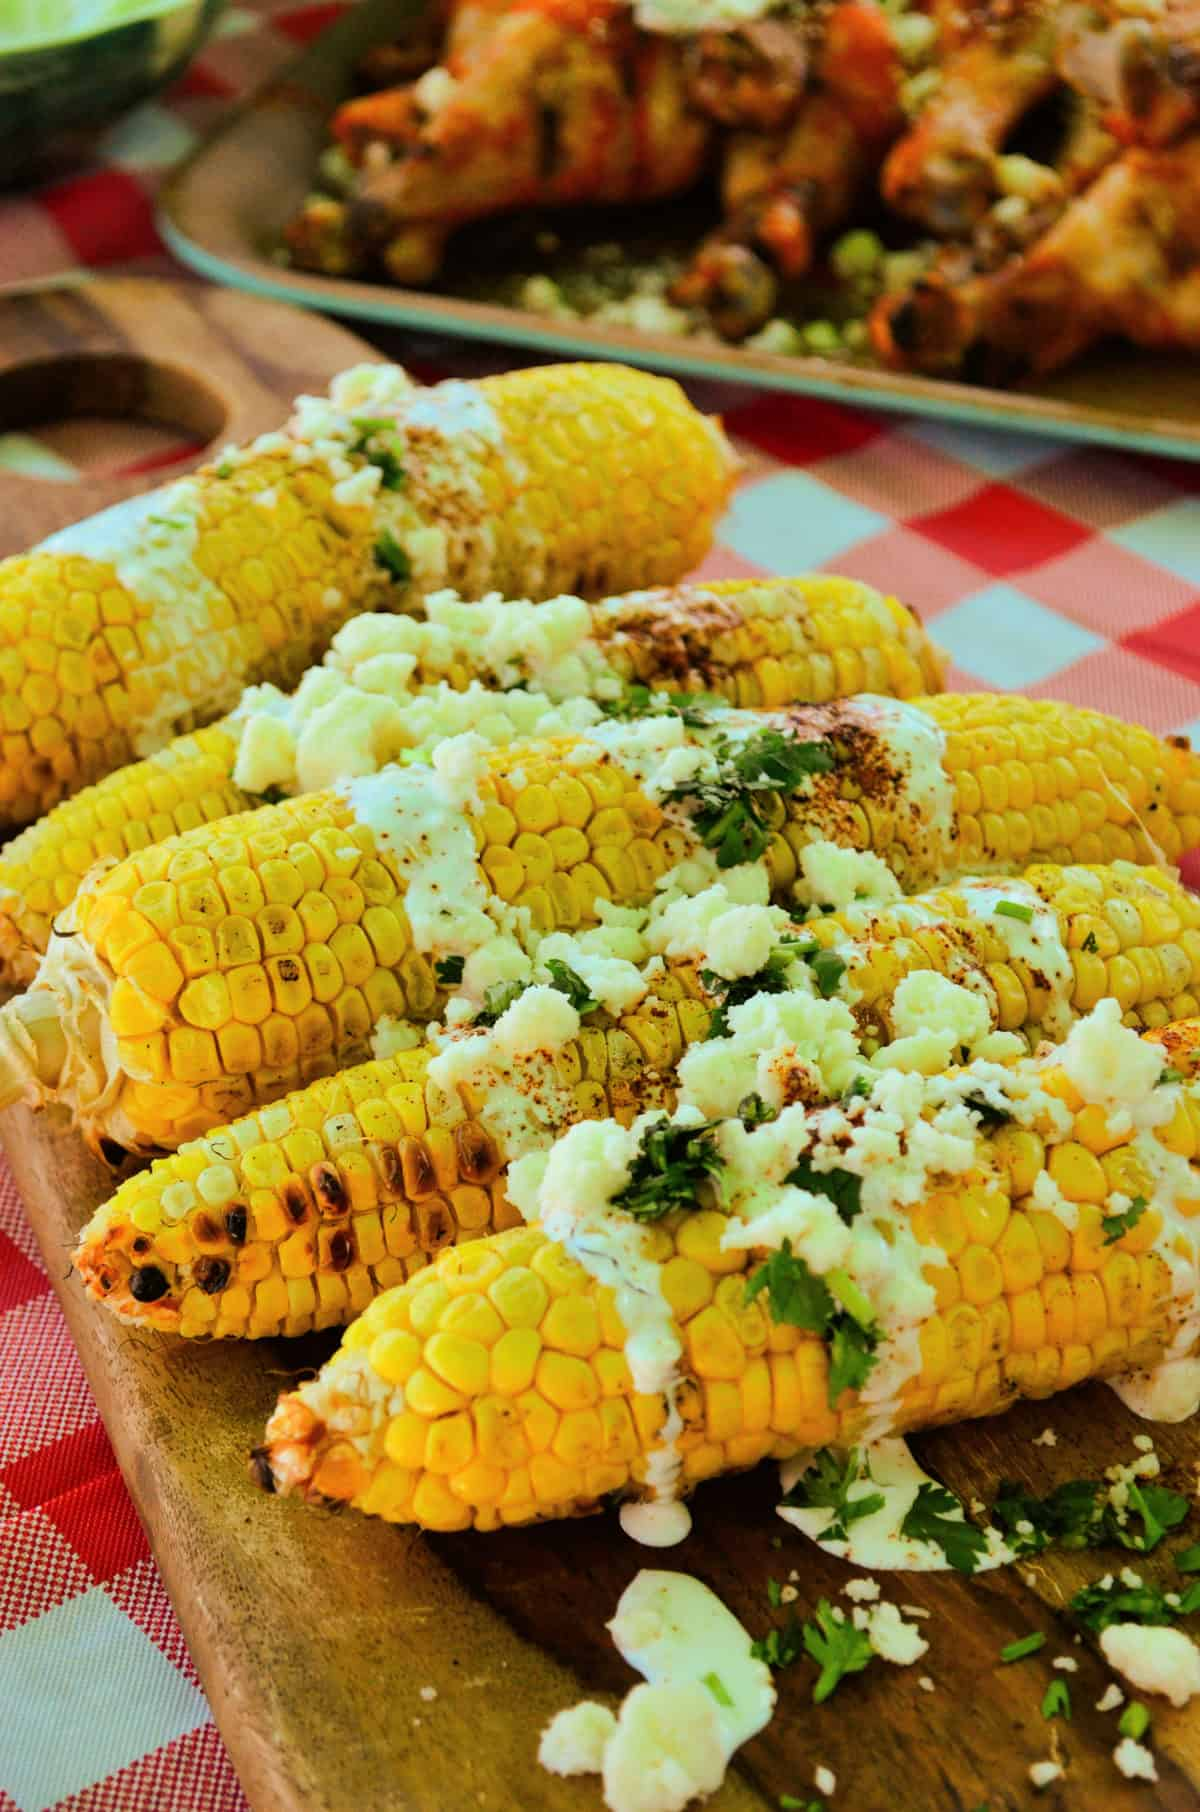 corn cobs on a board drizzled with crema, cheese crumbles, red powder, and herbs.